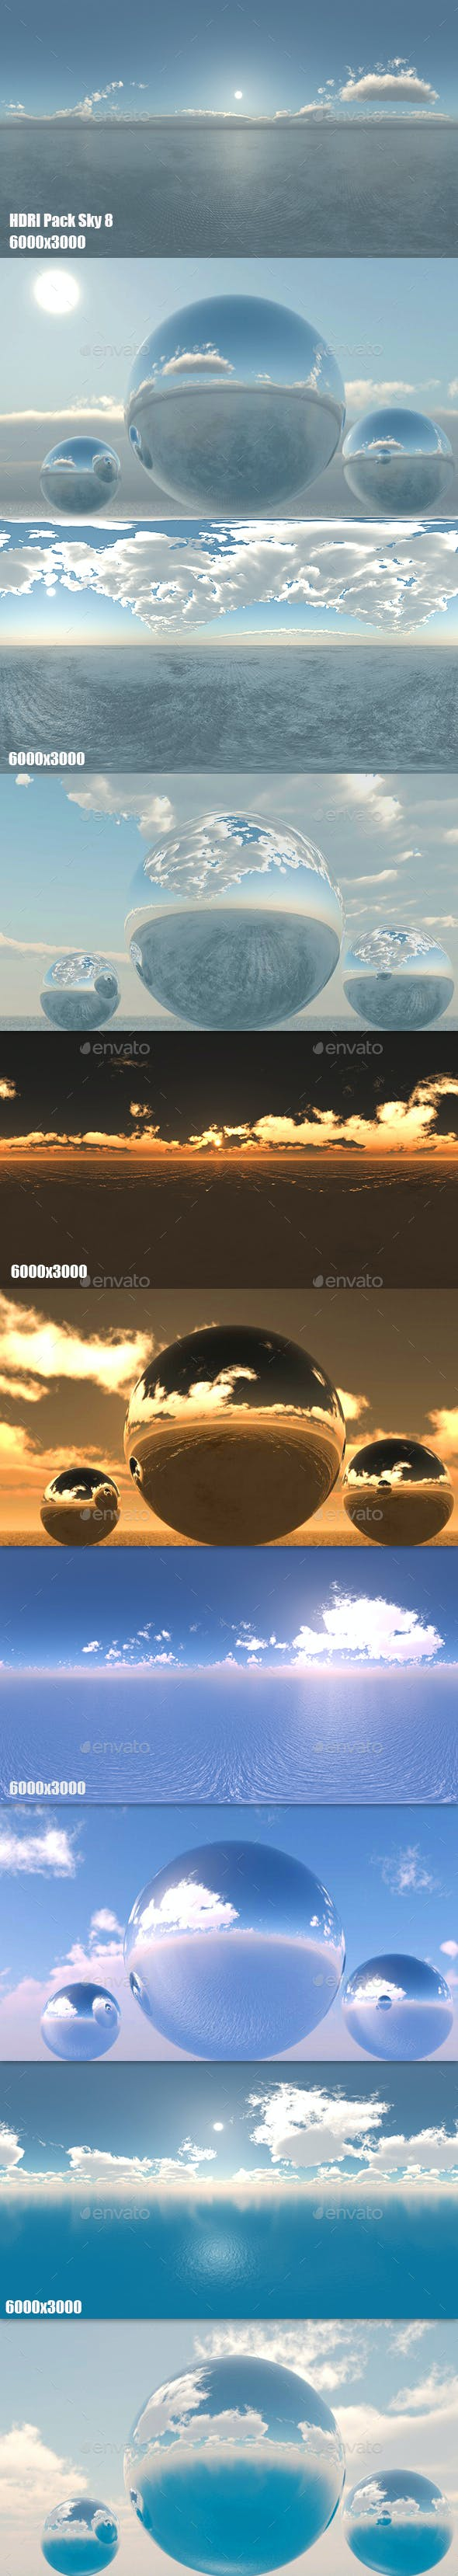 HDRI Pack Sky 8 - 3DOcean Item for Sale